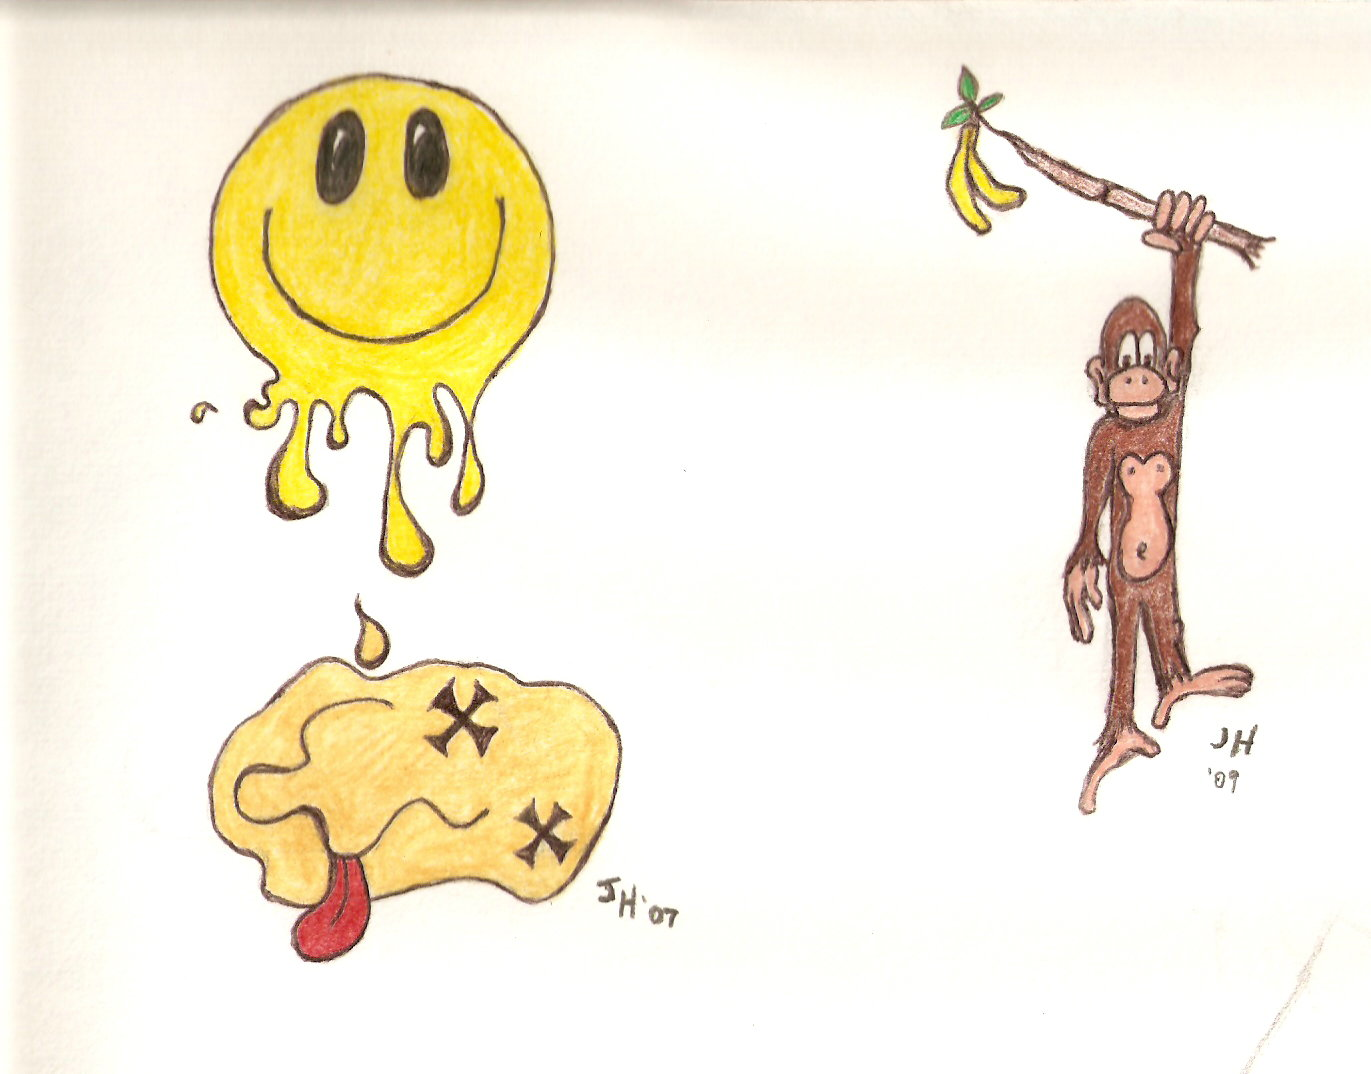 http://fc01.deviantart.net/fs71/f/2012/034/0/e/had_a_nice_day_______and_some_random_monkey_by_hecklerink-d4ohka8.jpg